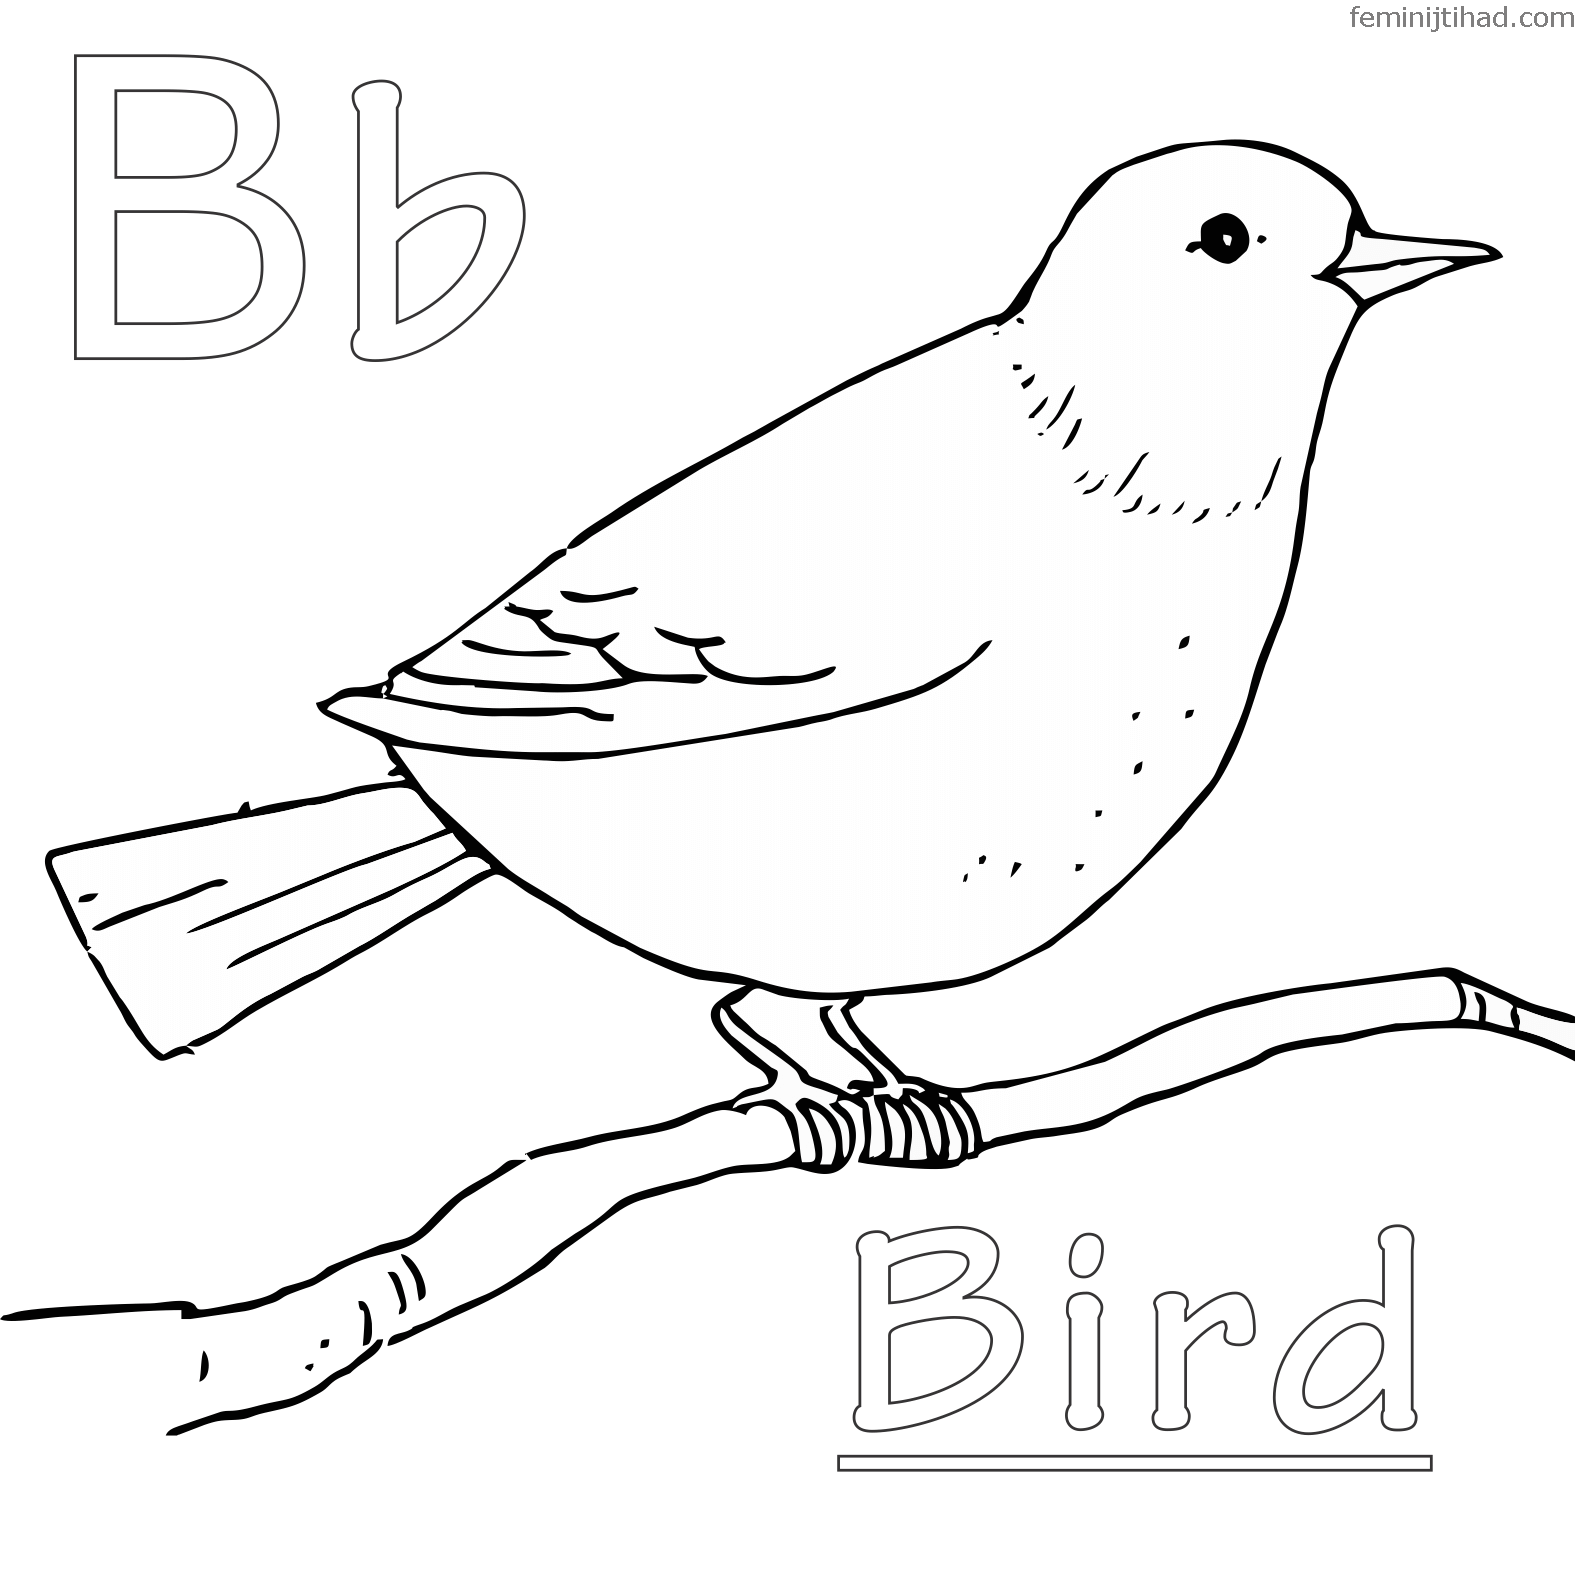 free bird coloring pages grateful dead bears coloring pages at getcoloringscom coloring bird free pages